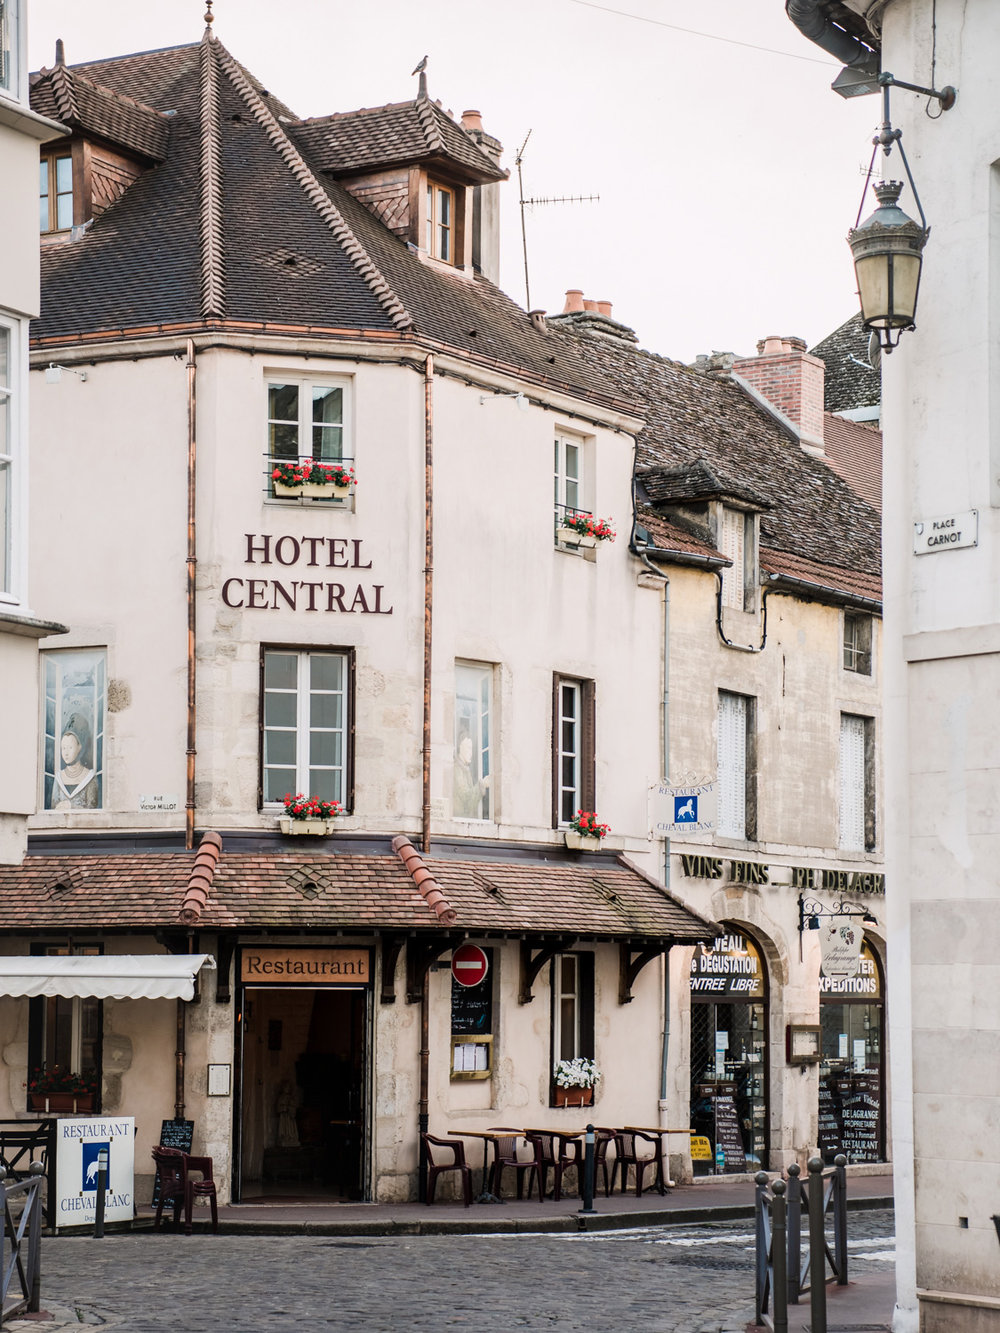 Hotel Central in Beaune, France, a small town between Paris and Avignon.